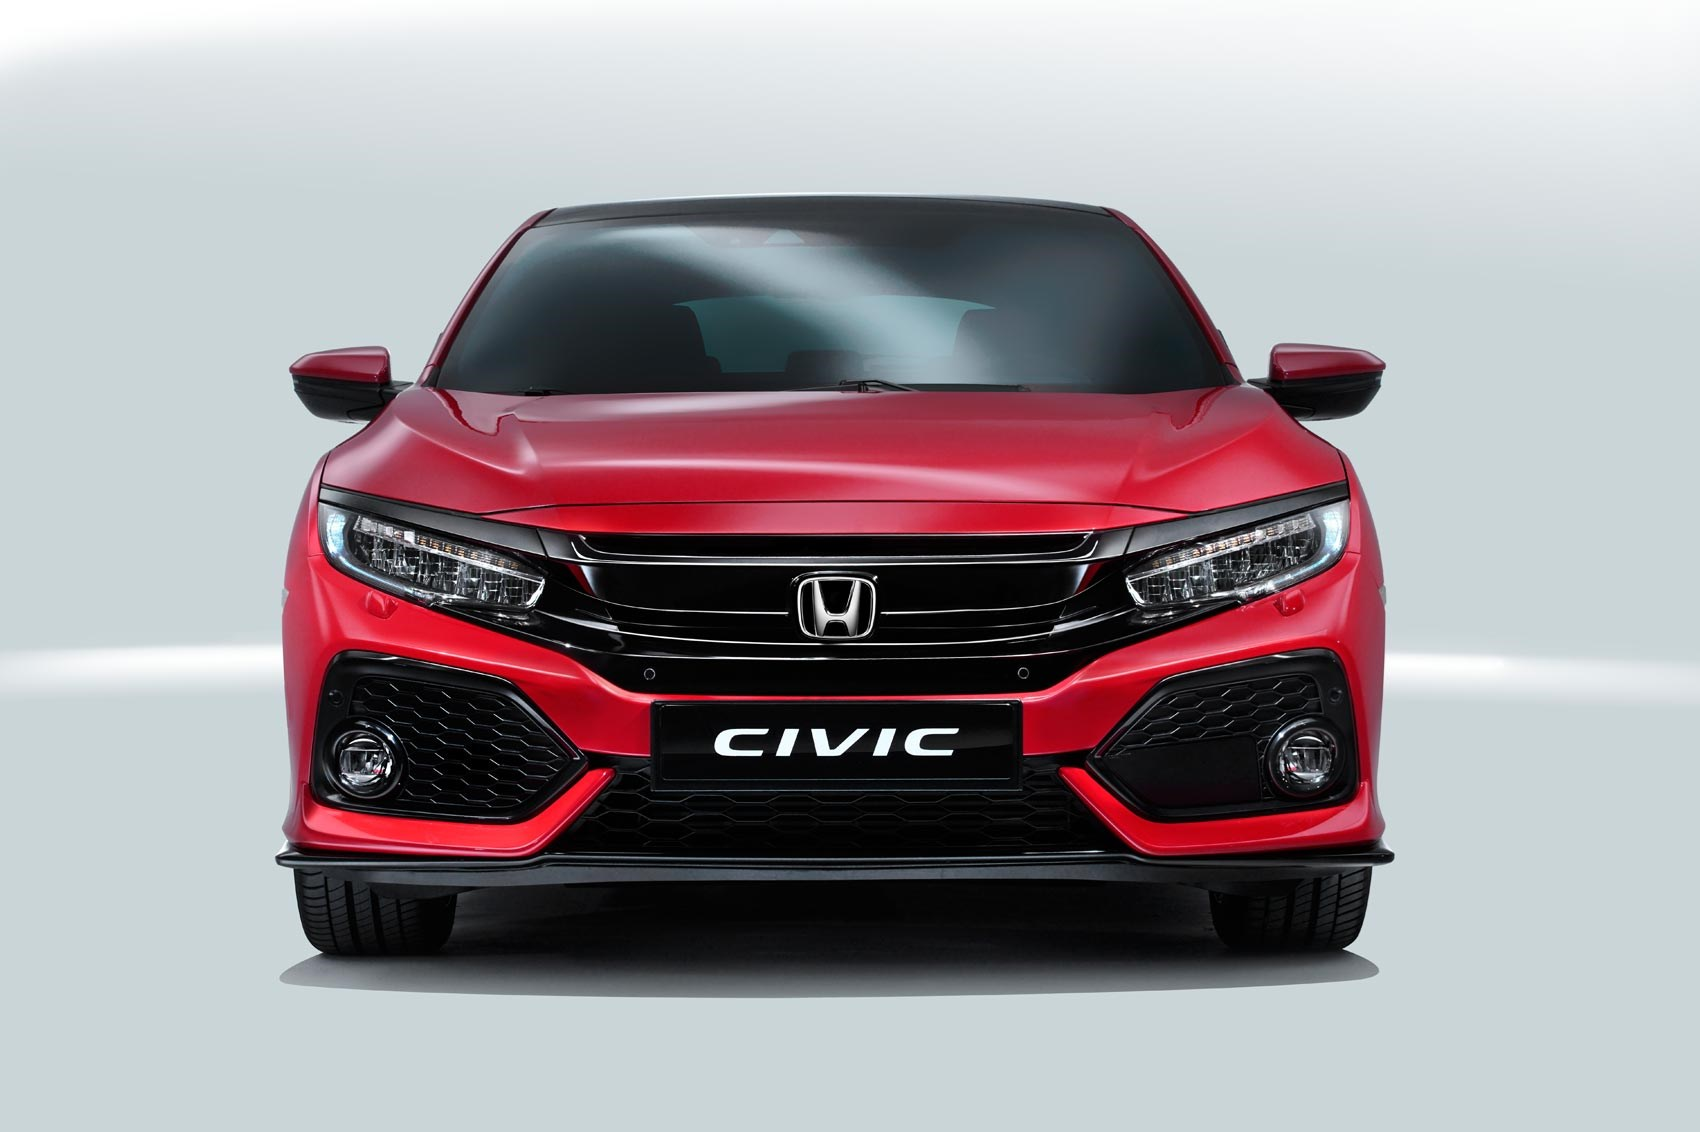 The New 2017 Honda Civic